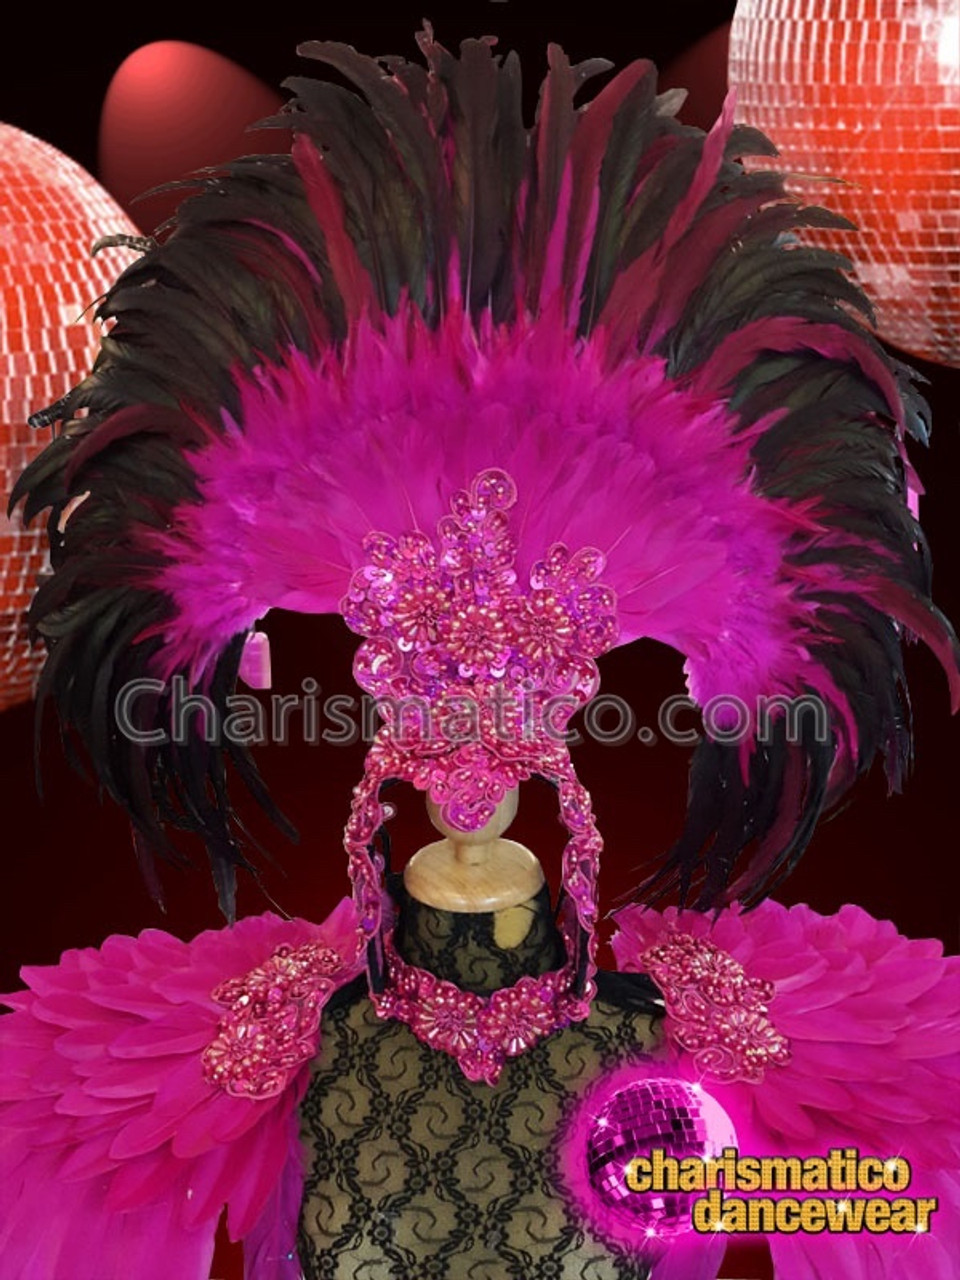 CHARISMATICO Fuchsia feathered and ruffled headdress with silver beads